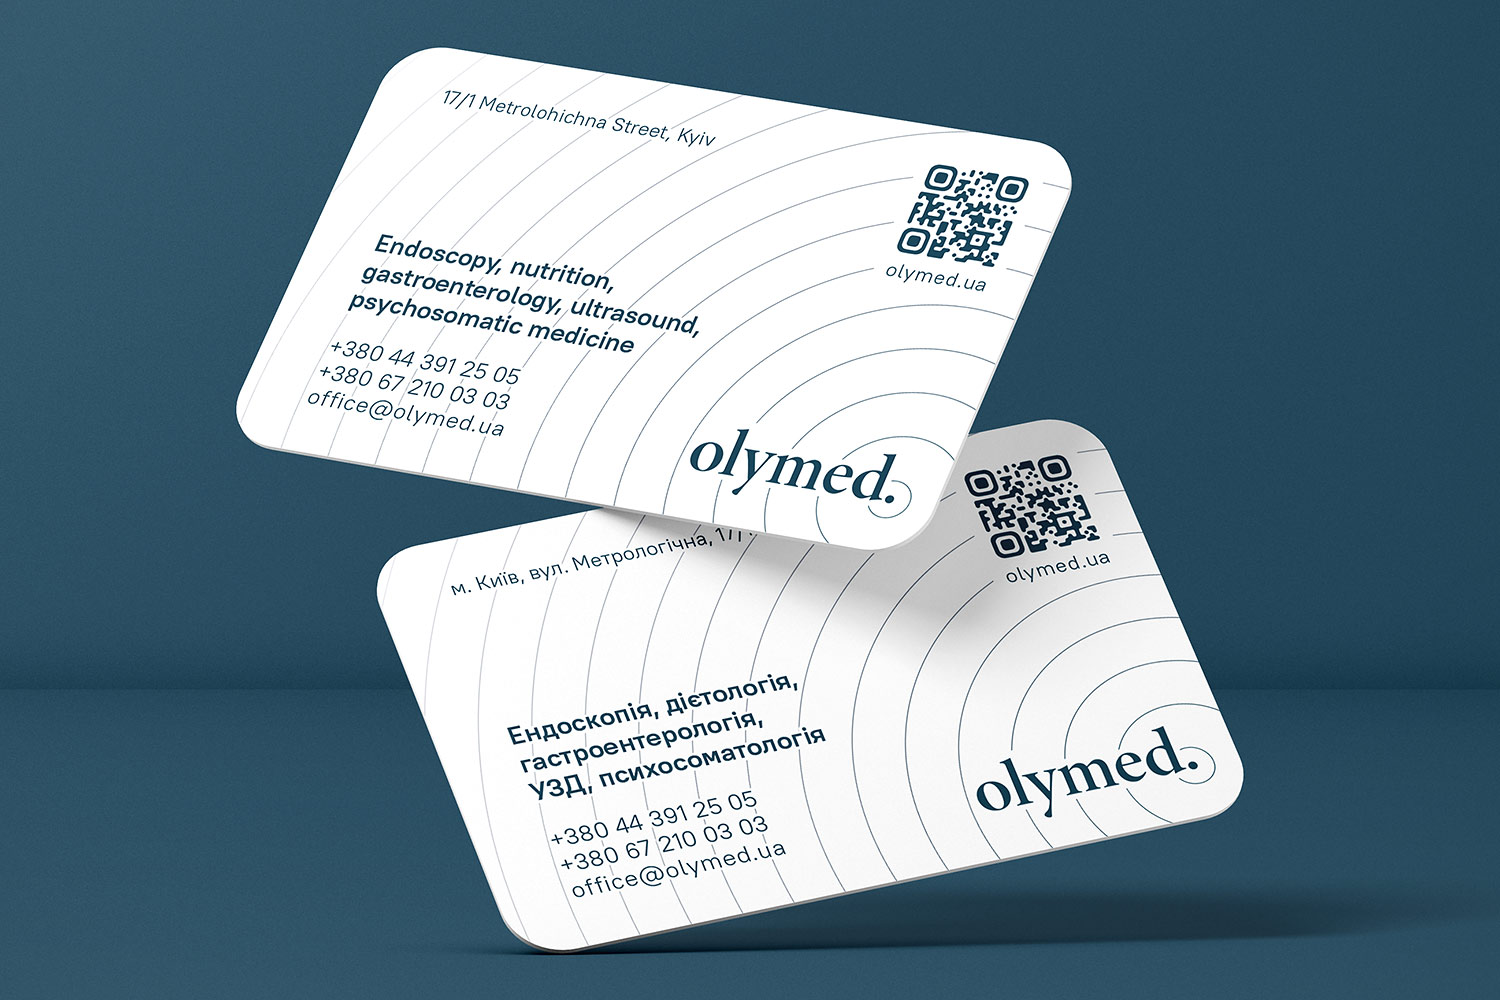 Business card design for OLYMED clinic. Endoscopy, nutrition, gastroenterology, ultrasound, psychosomatic medicine.